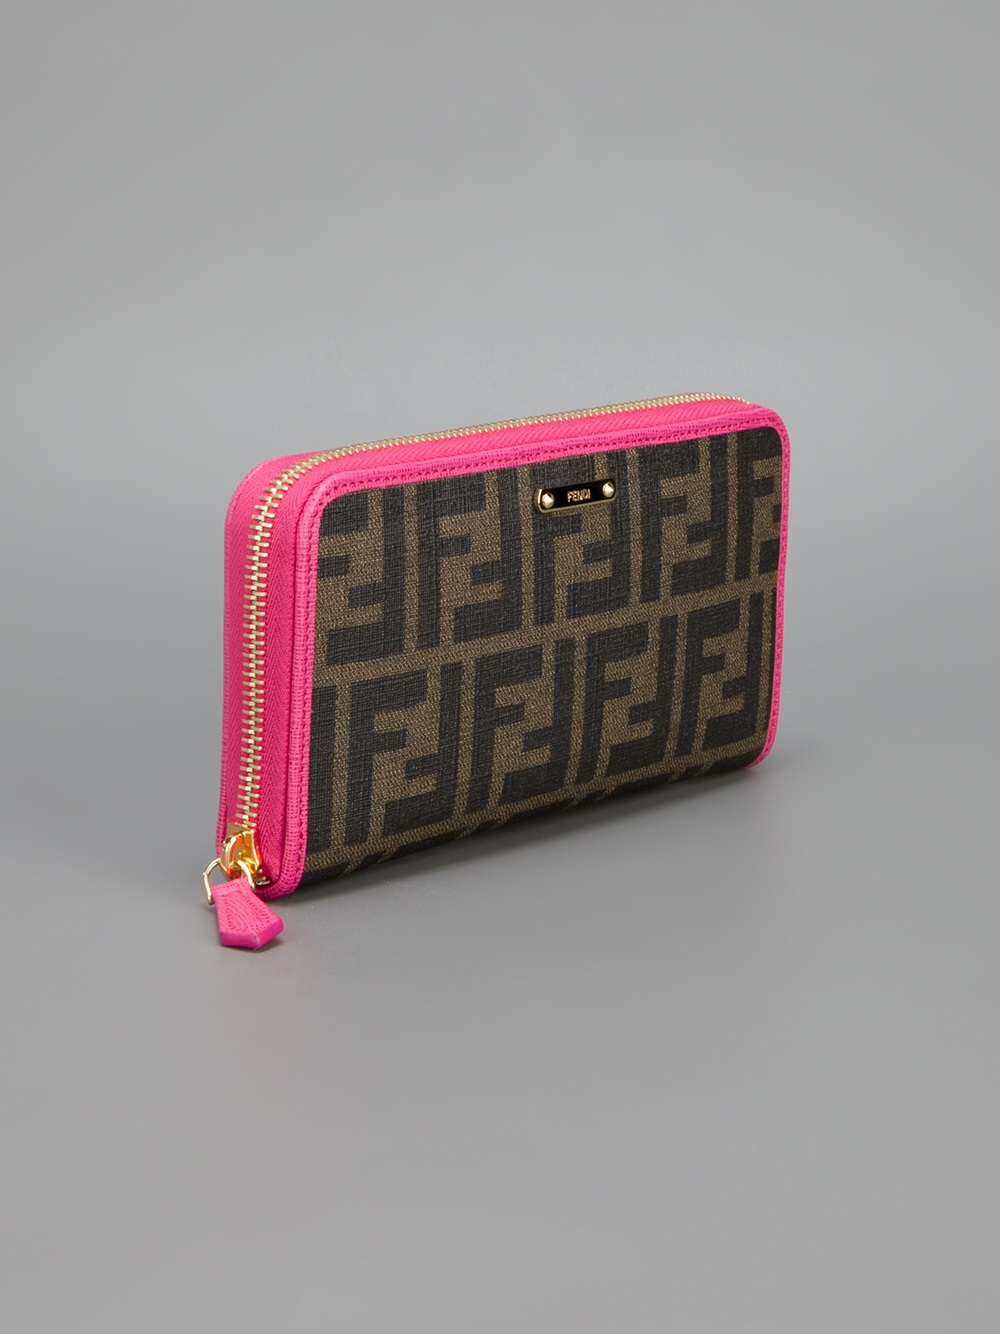 05e100110795 Lyst - Fendi Monogram Wallet in Brown